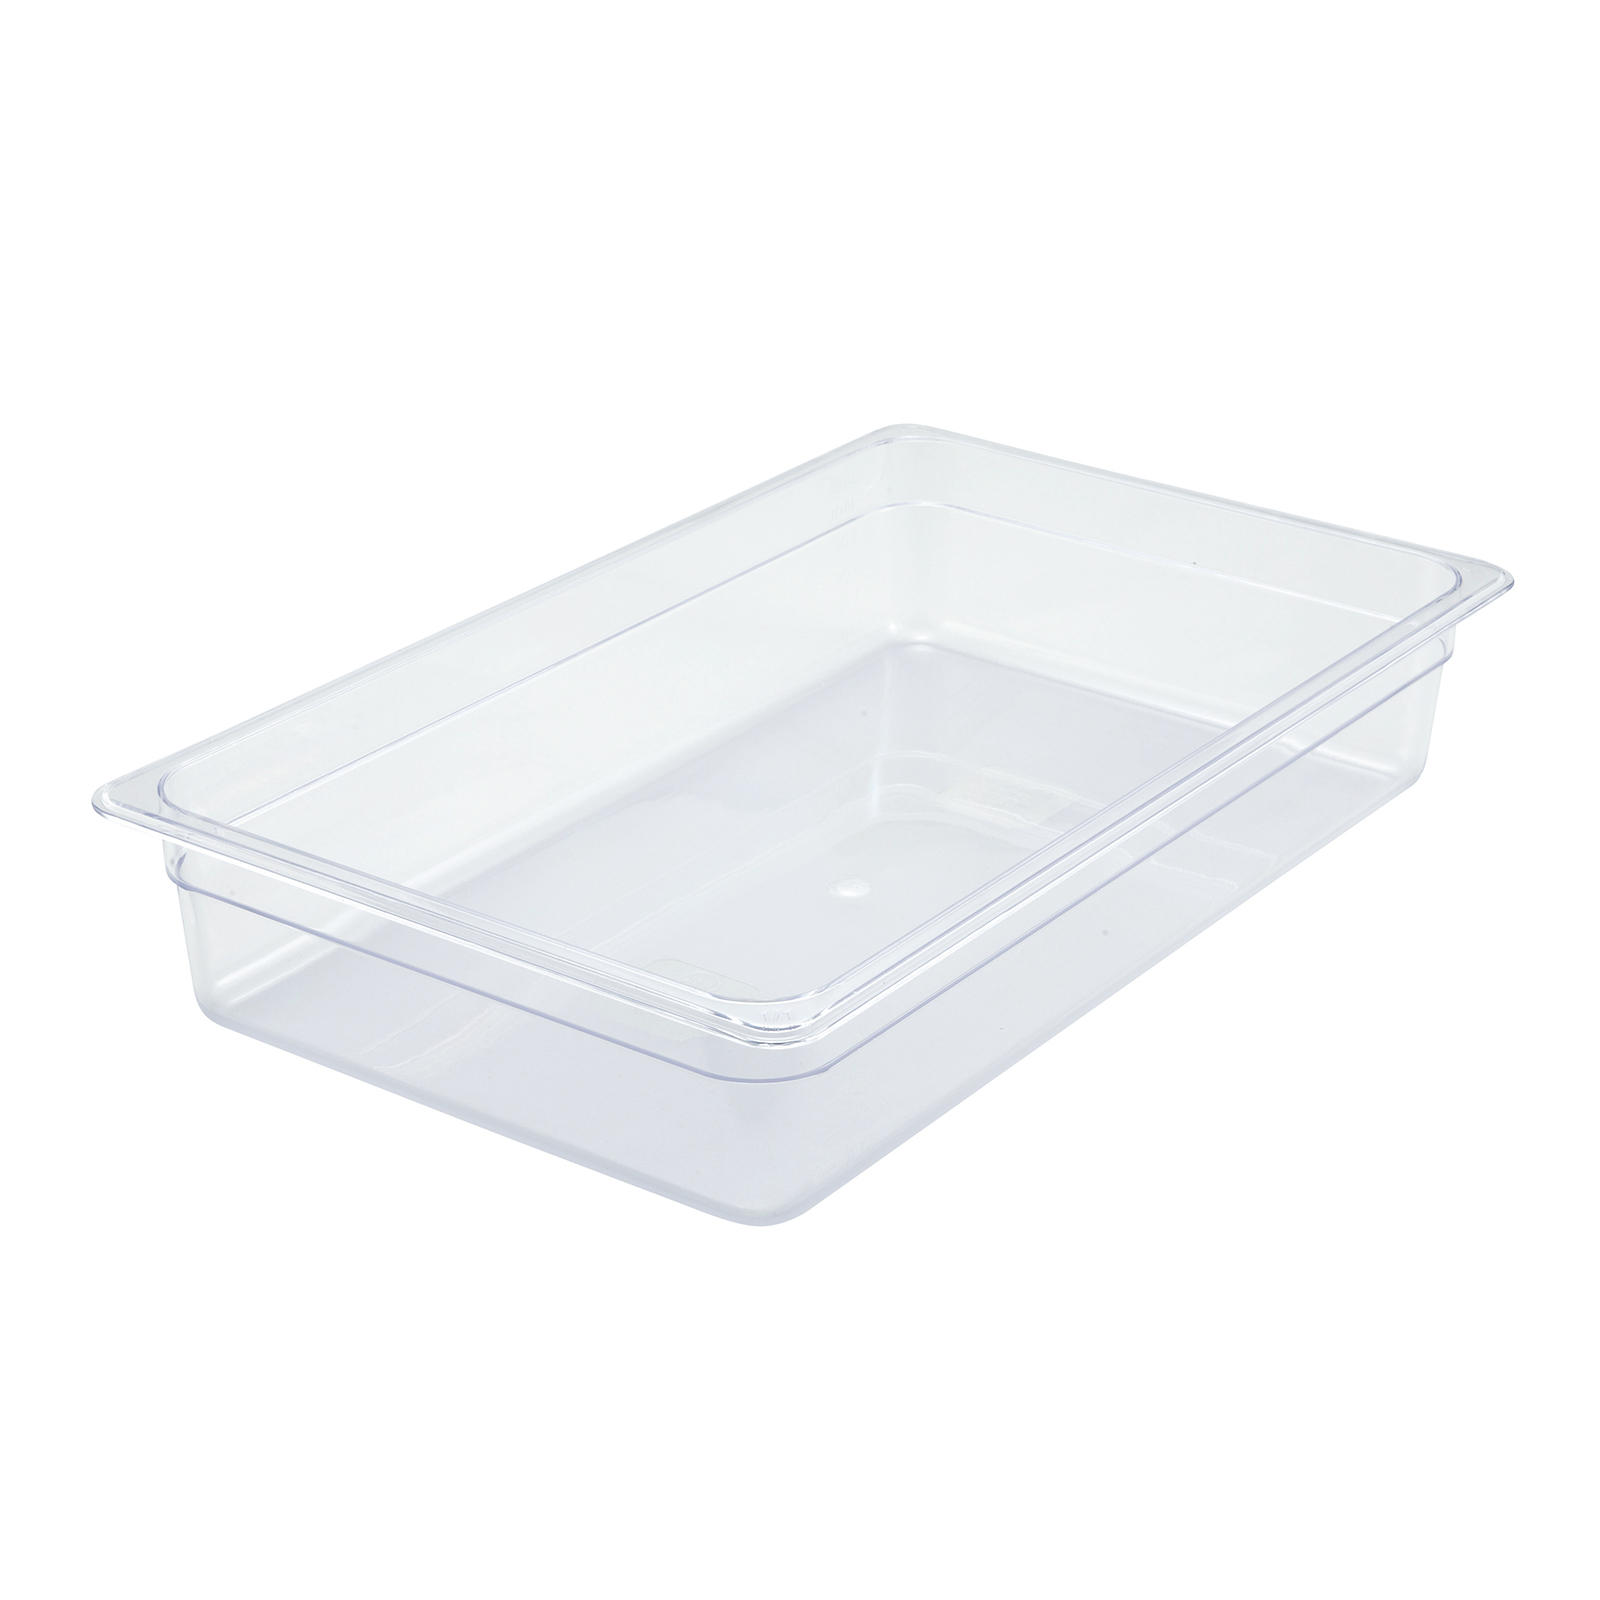 2410-011 Winco SP7104 FULL size 4in D food pan, plastic